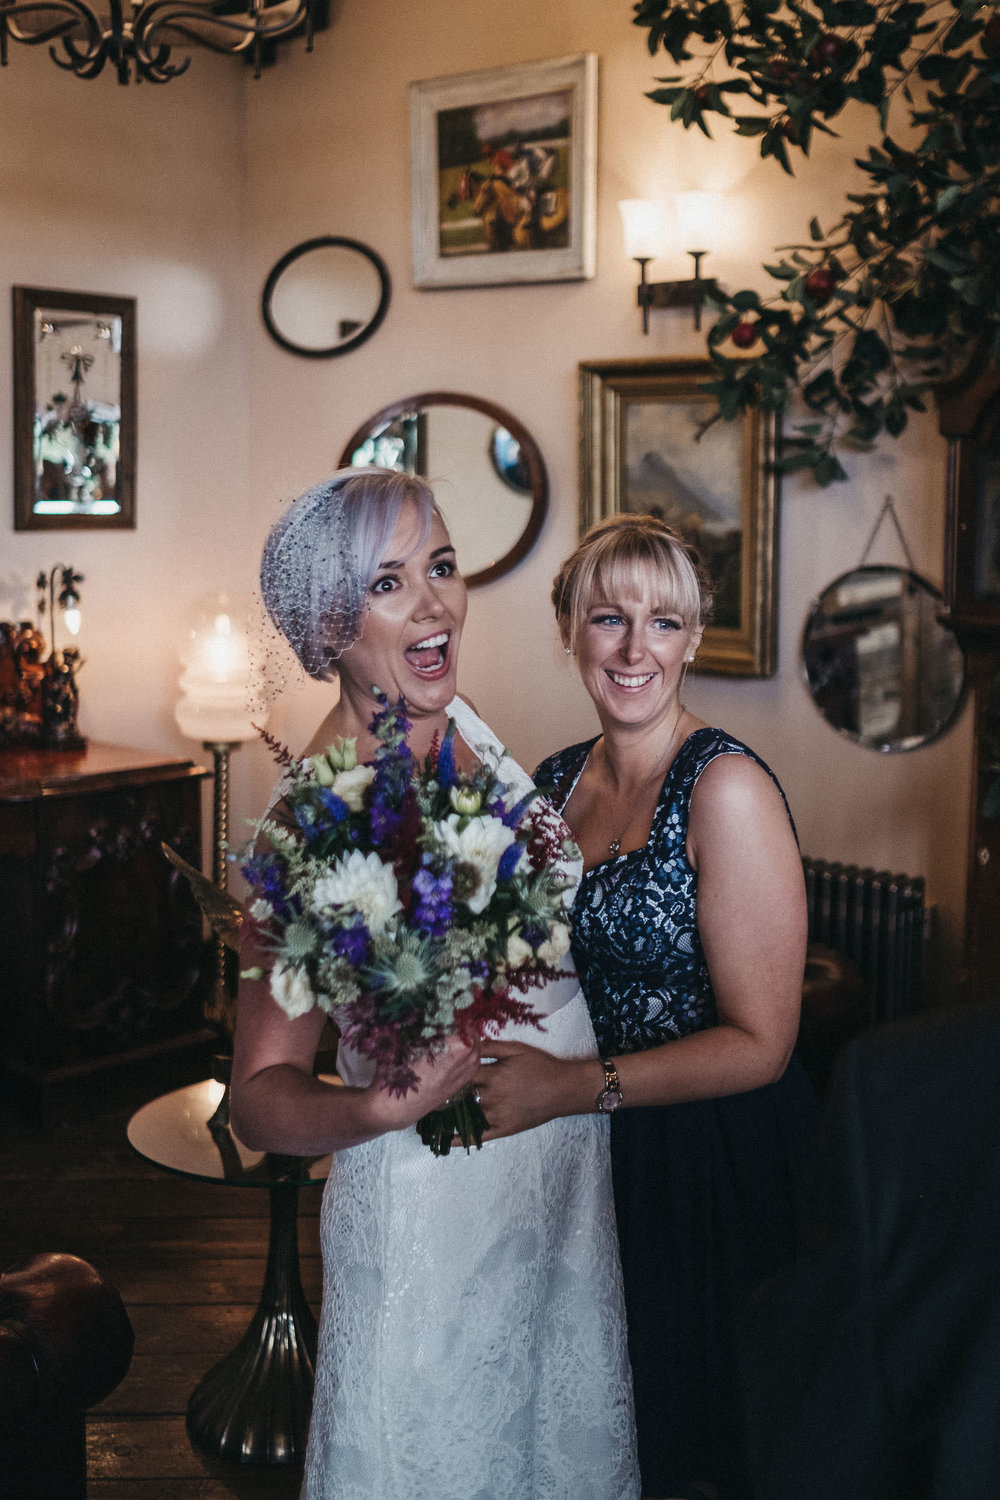 Bride pulls a funny face with guest at wedding